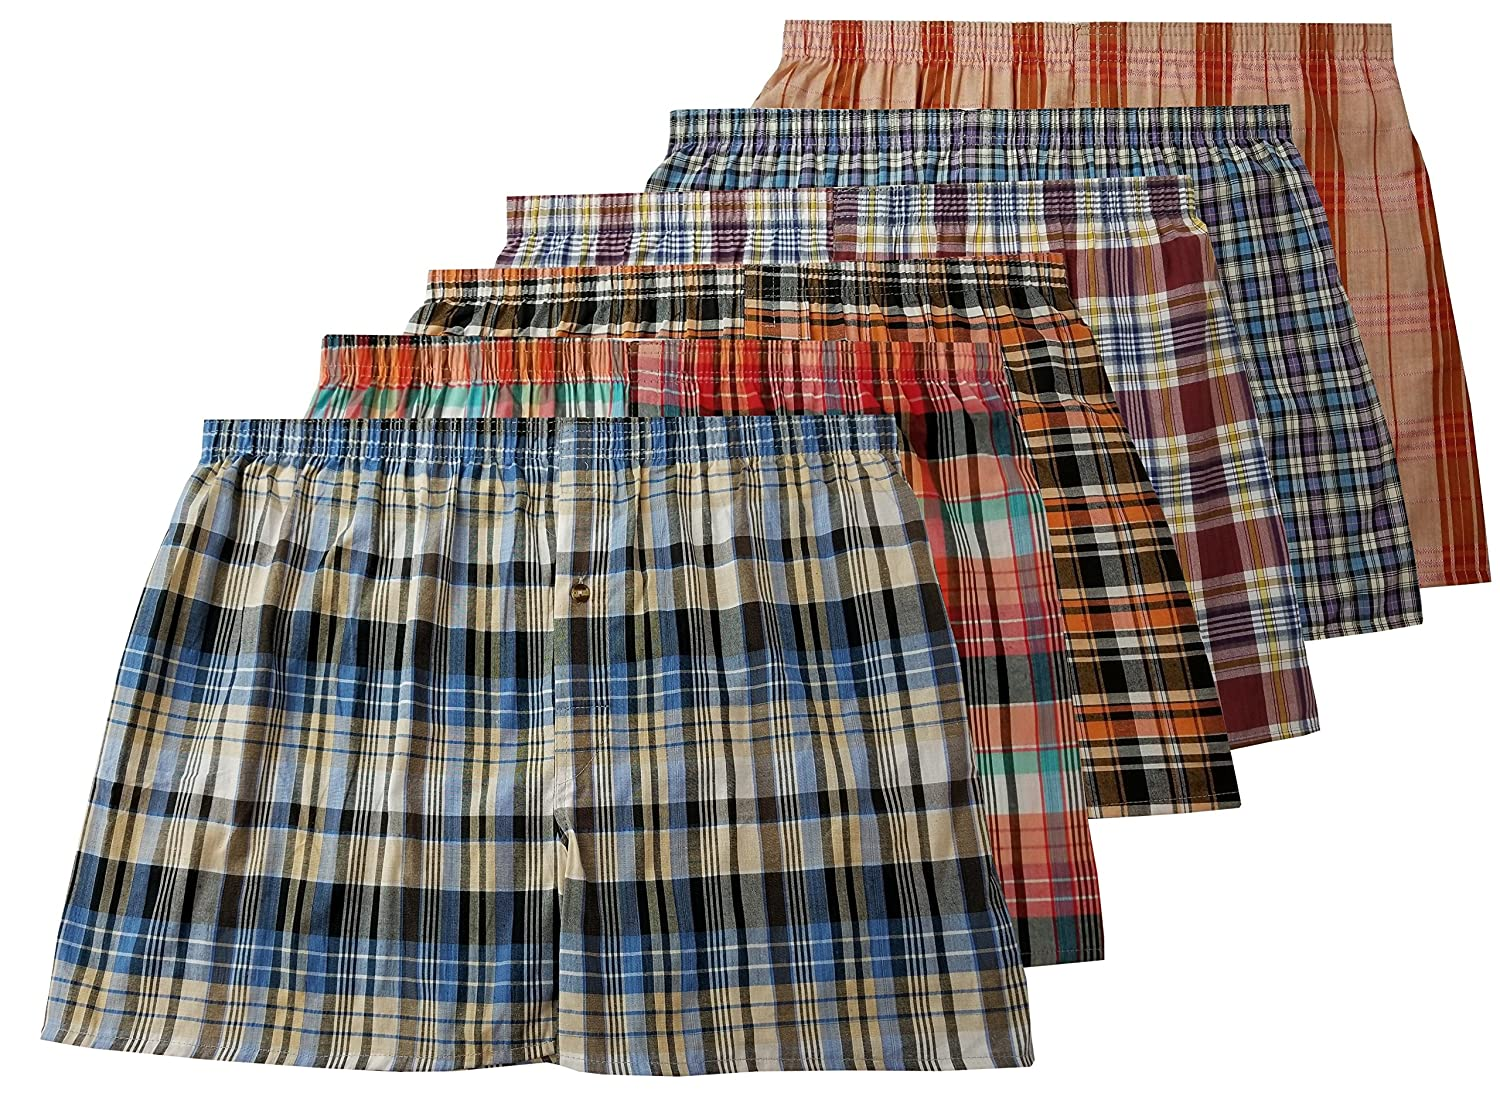 Men's True Big and Tall USA Classic Design Plaid Woven Boxer Shorts Underwear (6 Pack)